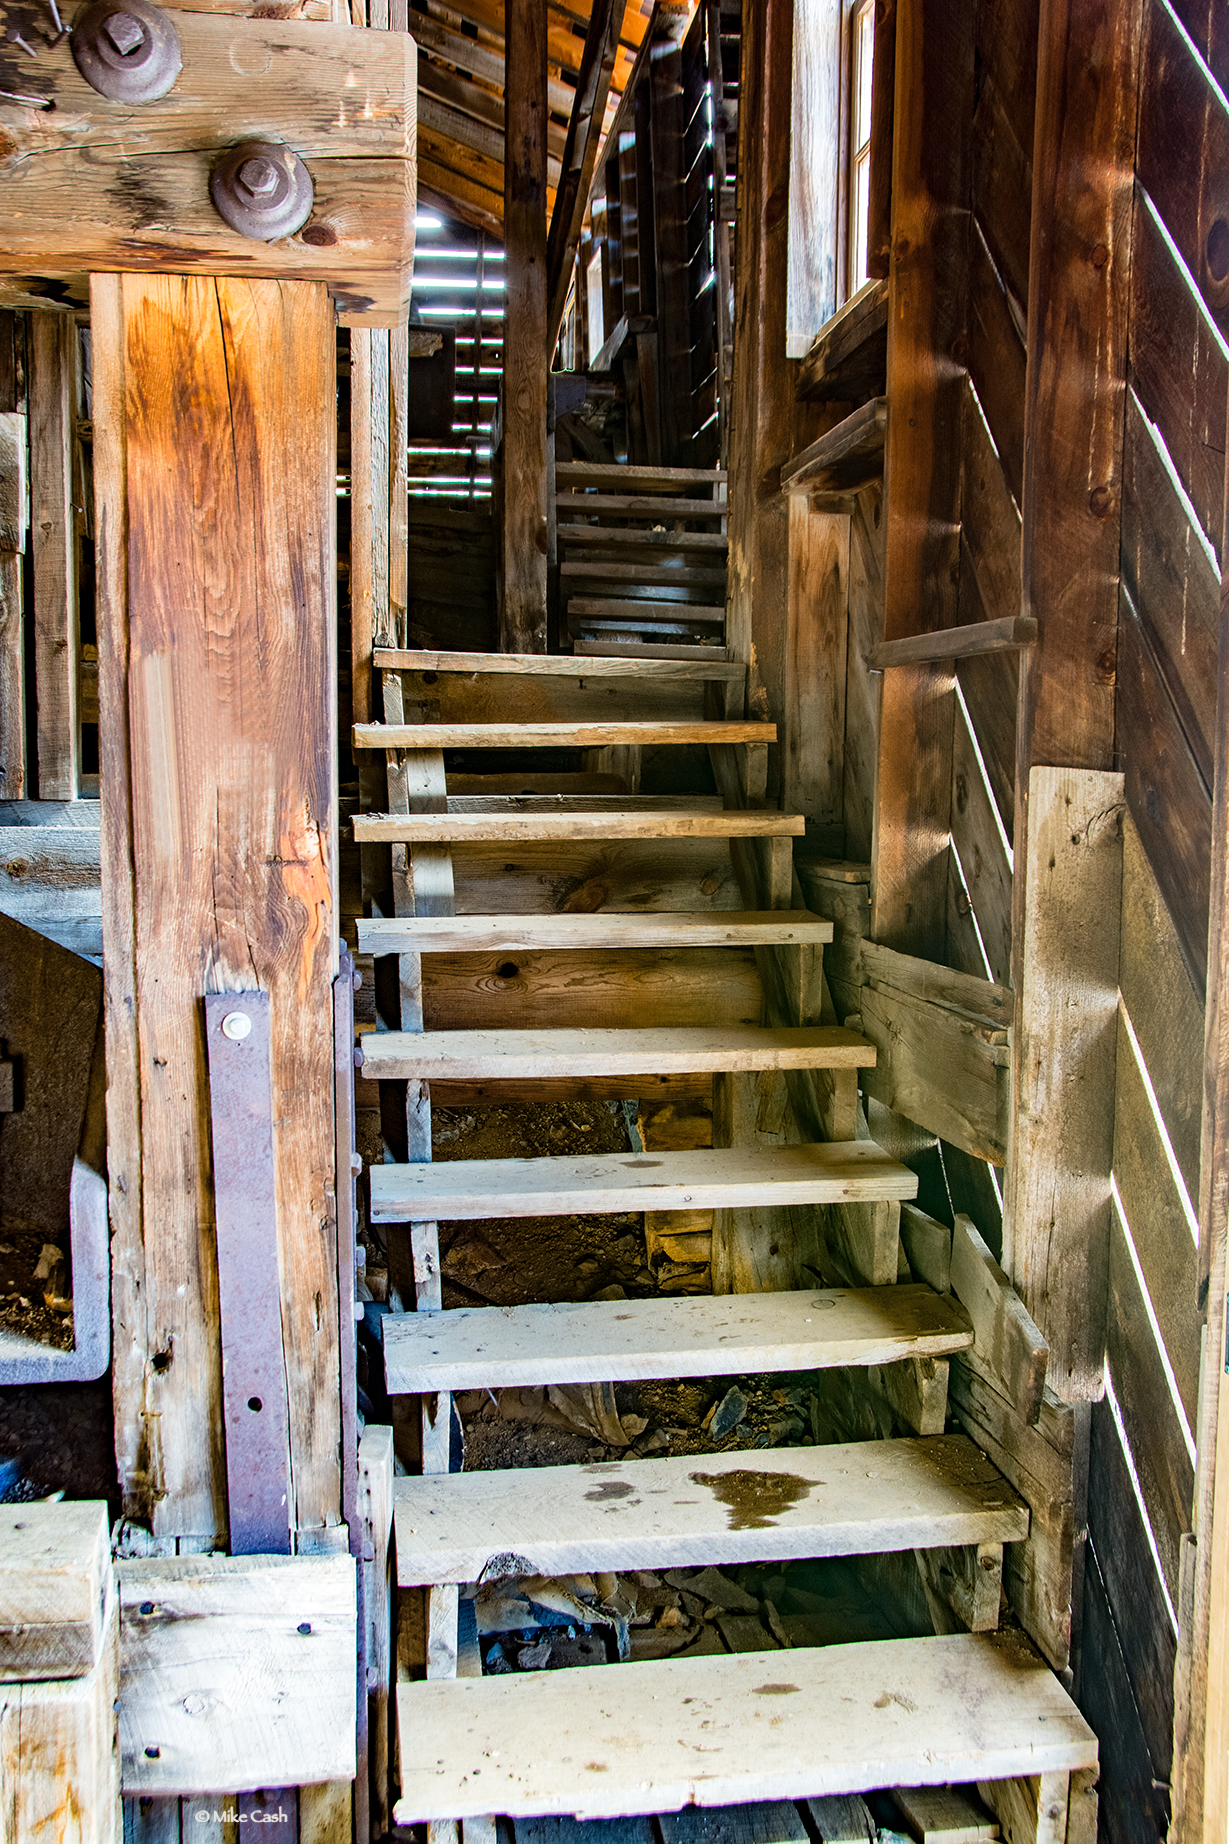 Stairs and stairs....